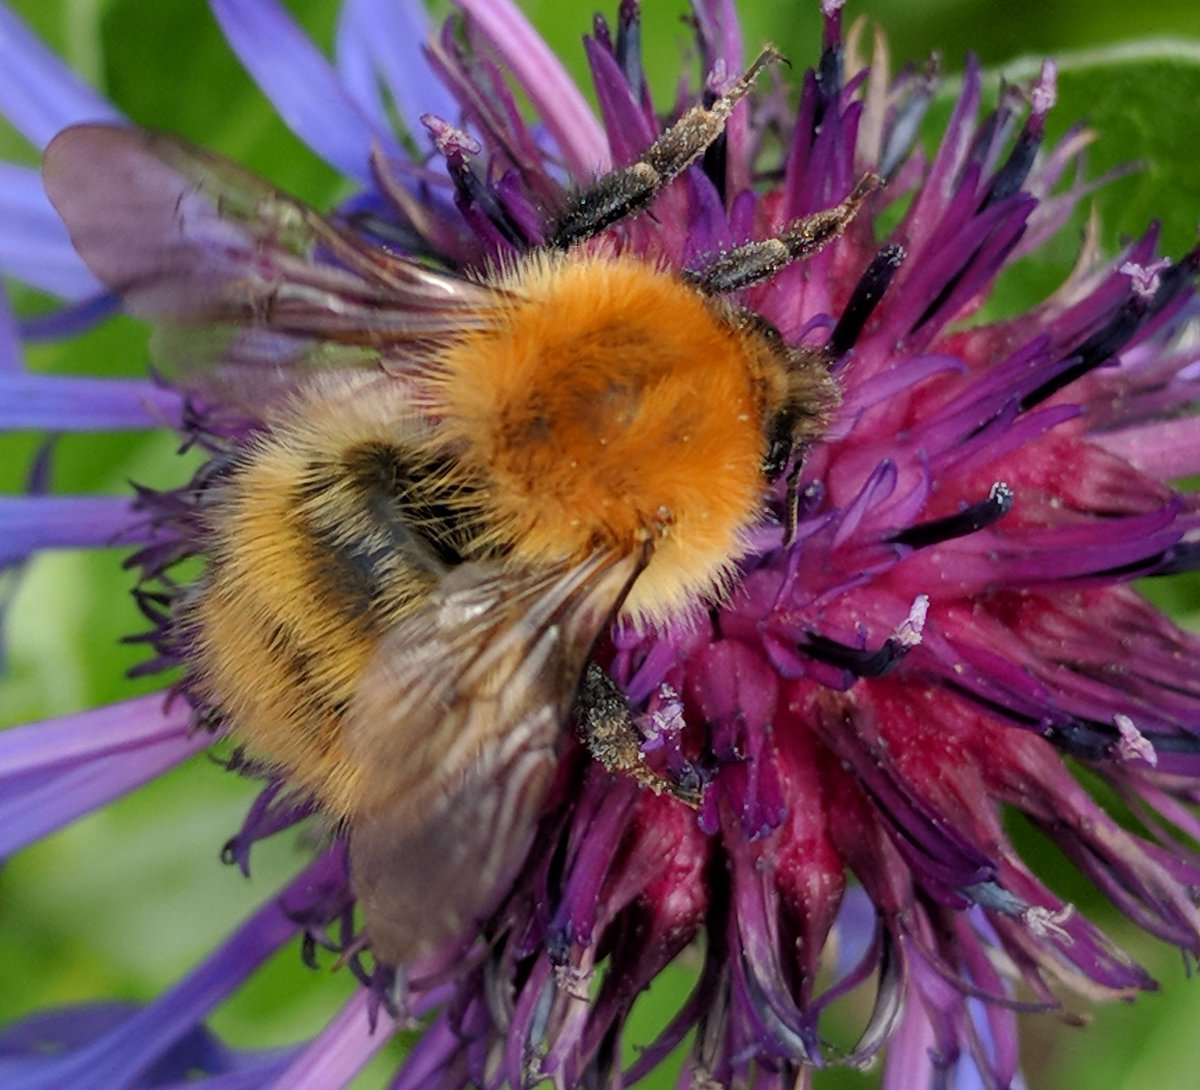 Our next #AberdeenEntClub talk will be Dr Marco Vallejo-Marin @nicrodemo on #buzzpollination 9 April 4pm @JamesHuttonInst or watch online #pollinators #bees